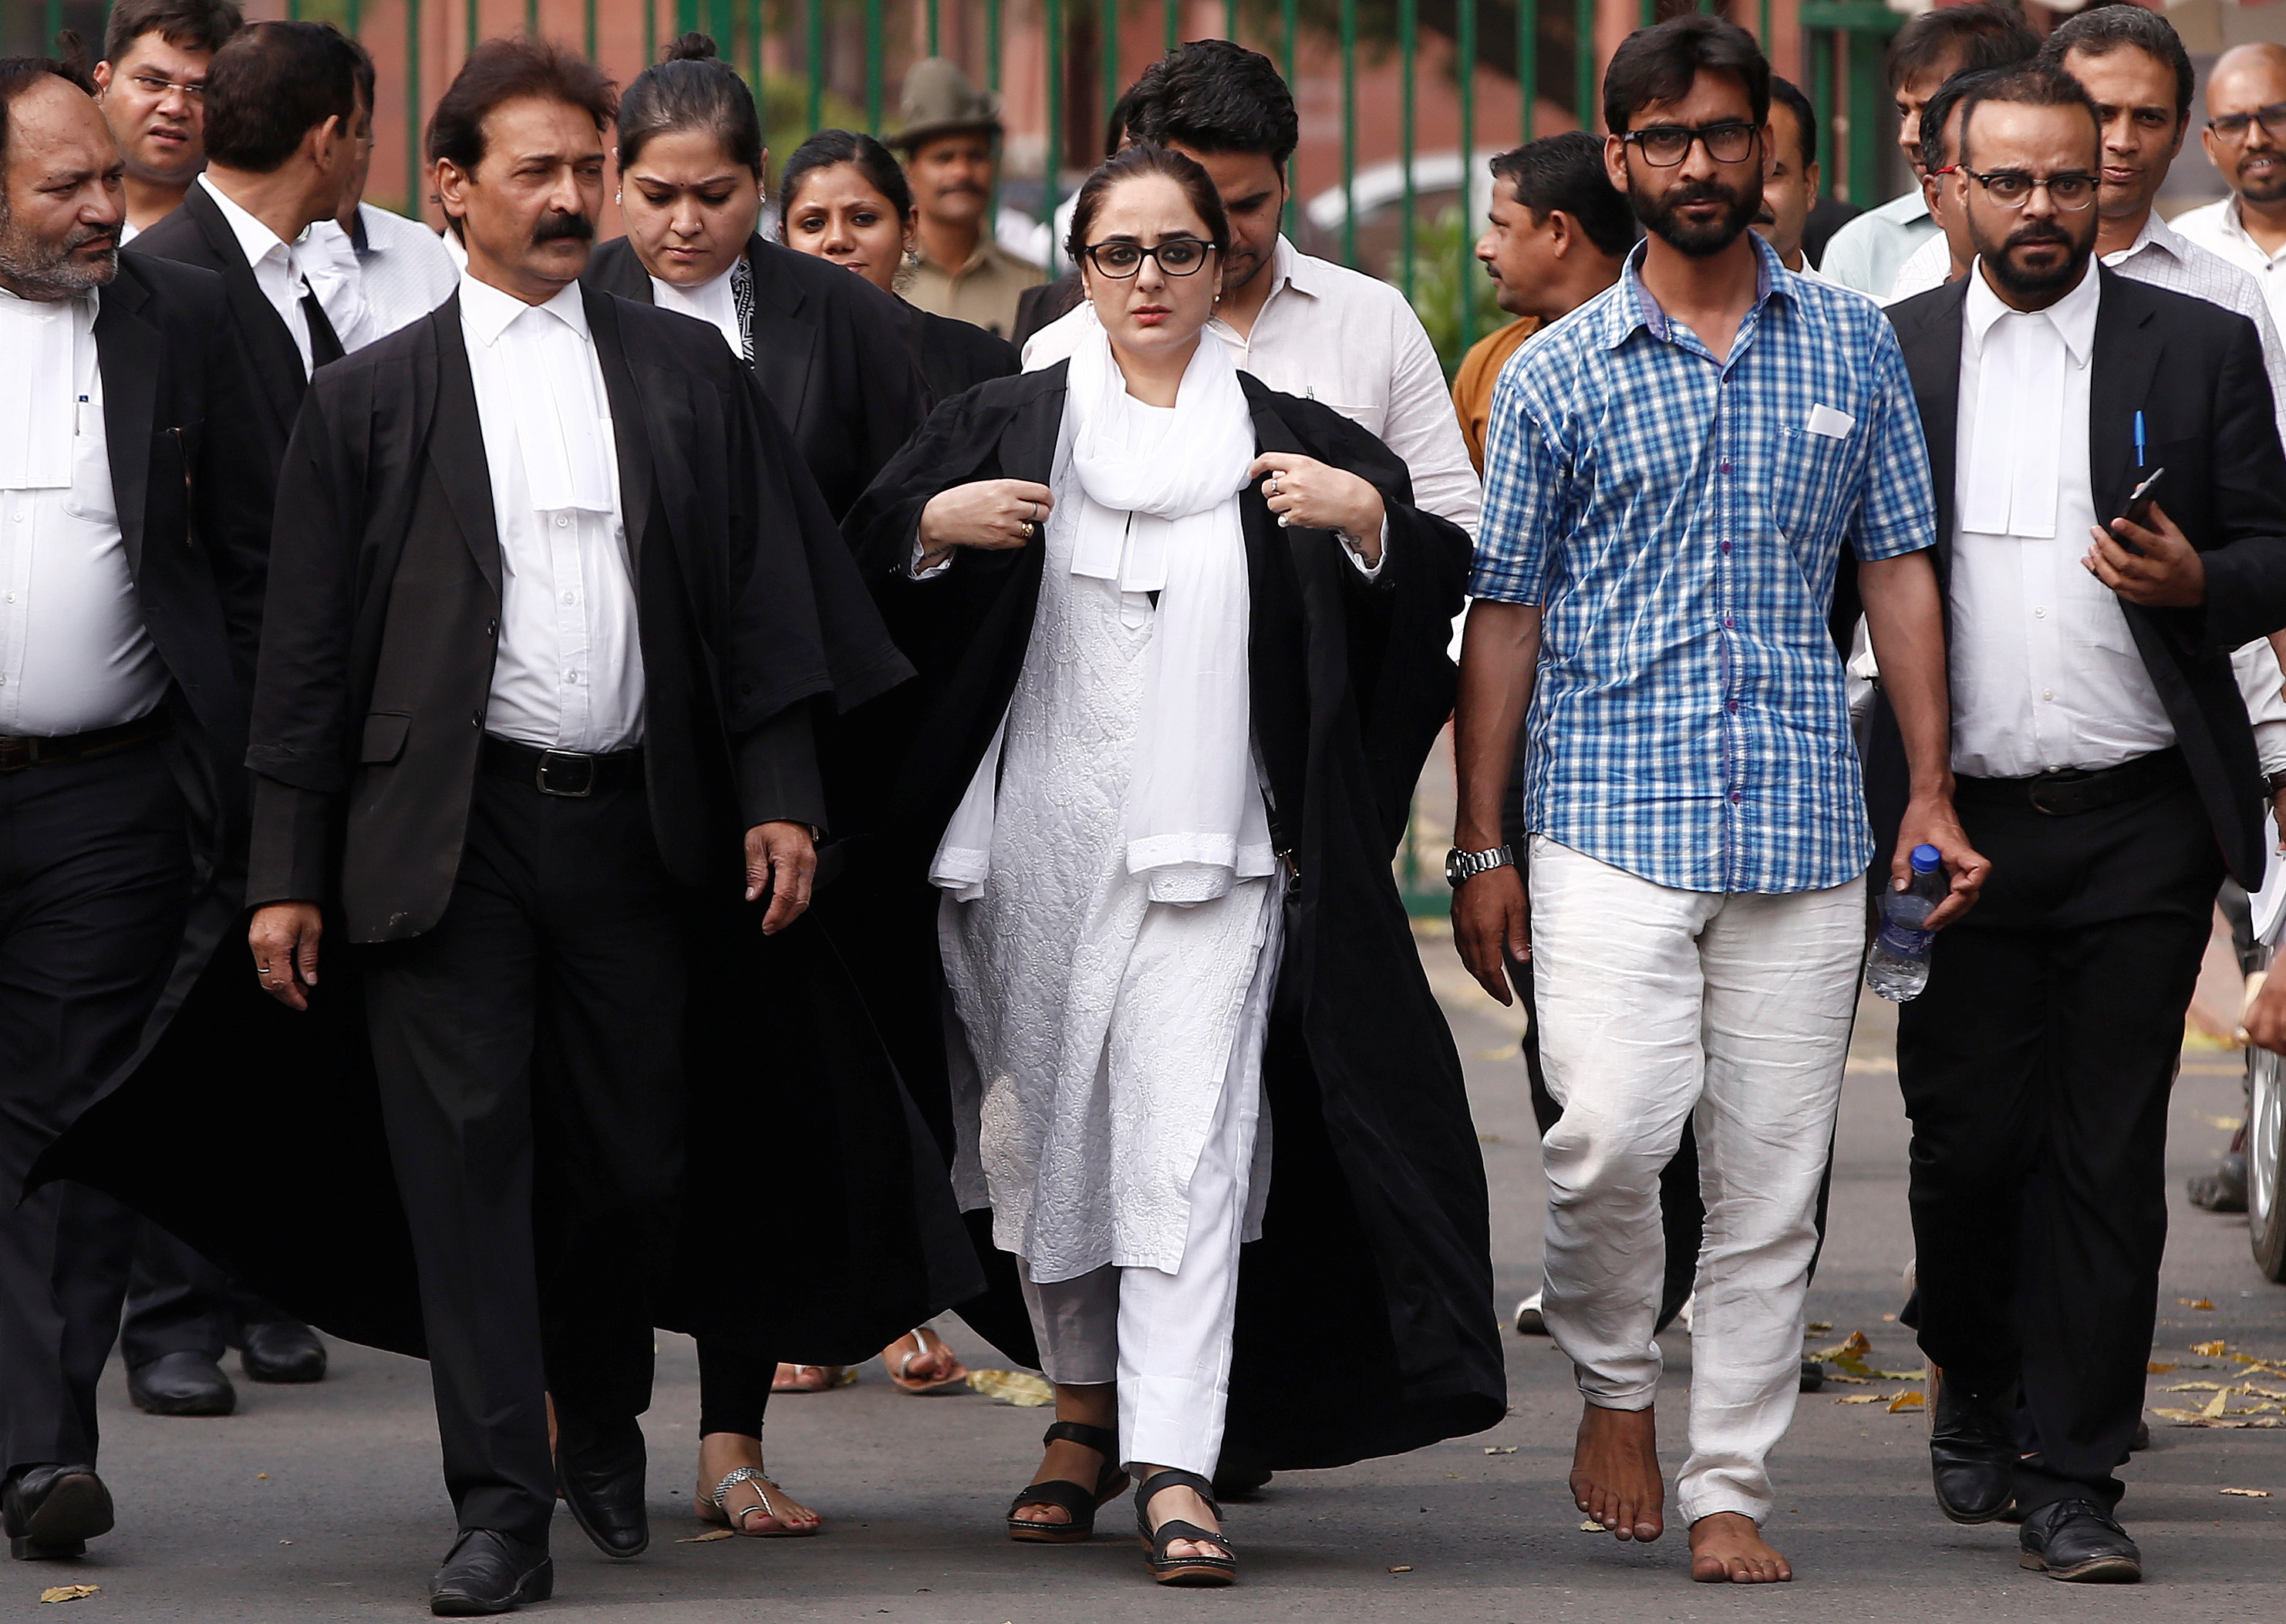 Talib Hussain, second right, with Deepika Singh Rajawat, the lawyer representing the Kathua victim's family. Photo credit: Reuters